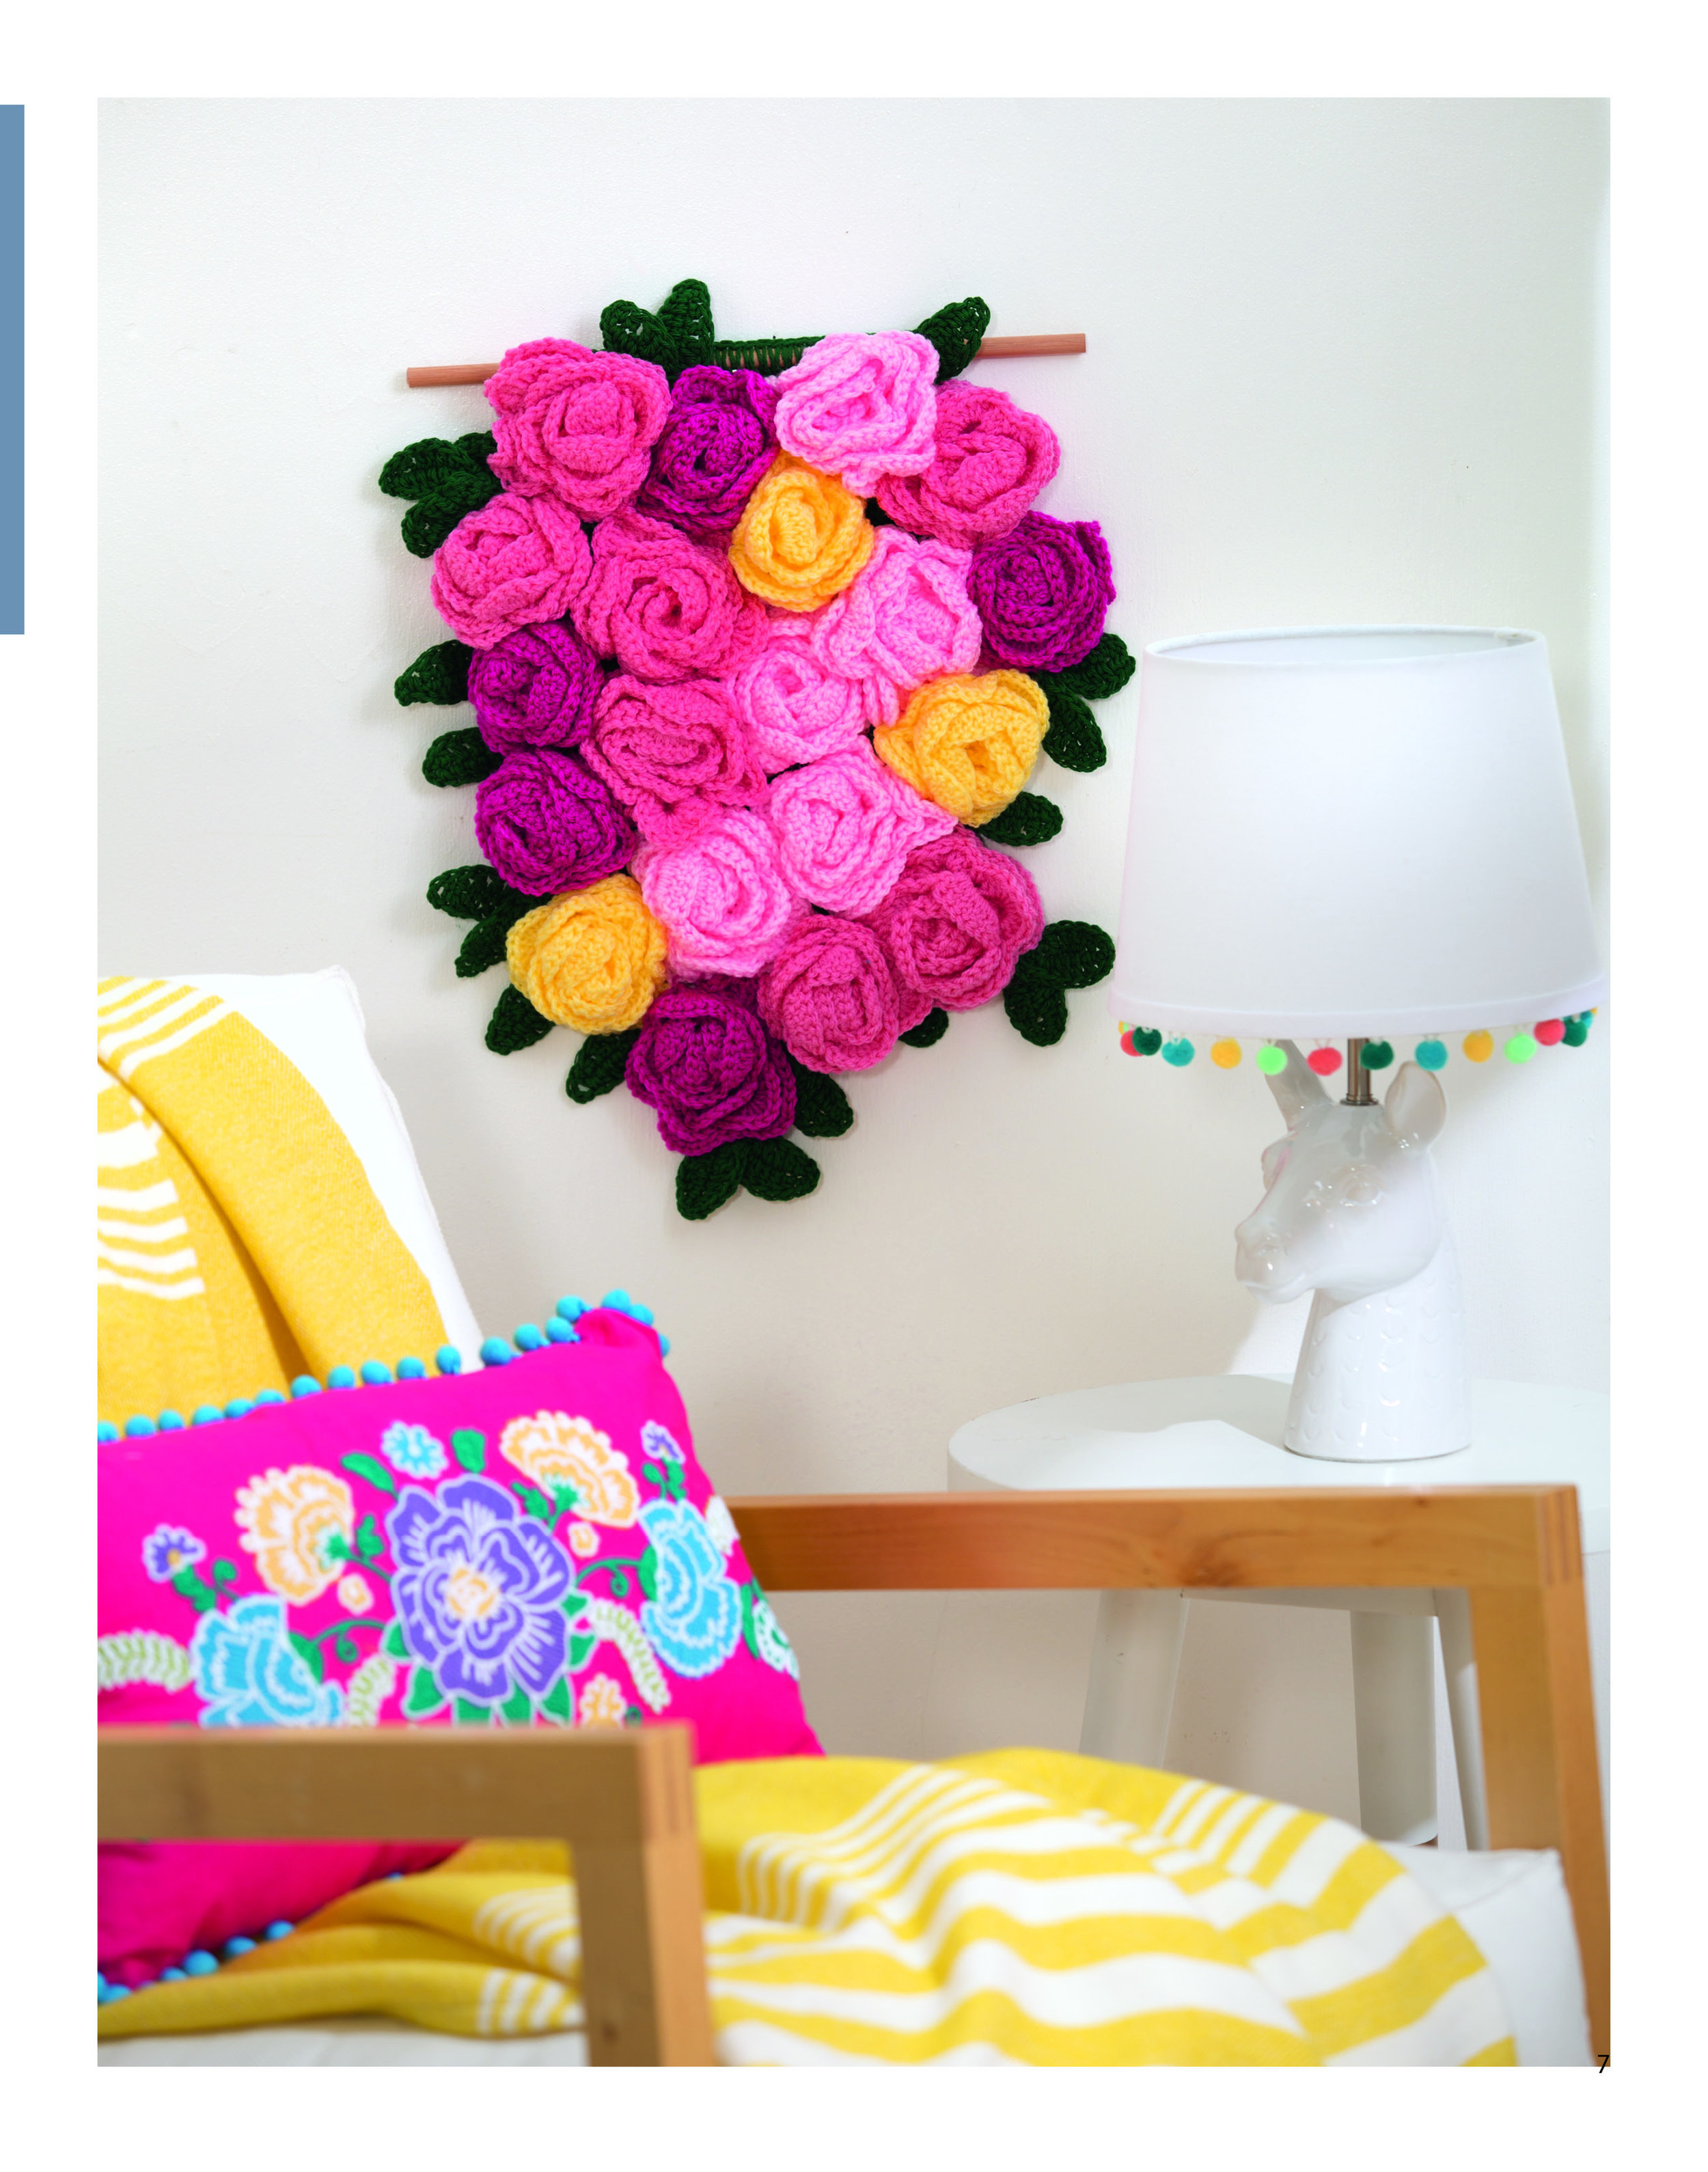 Add a little color to your decor!